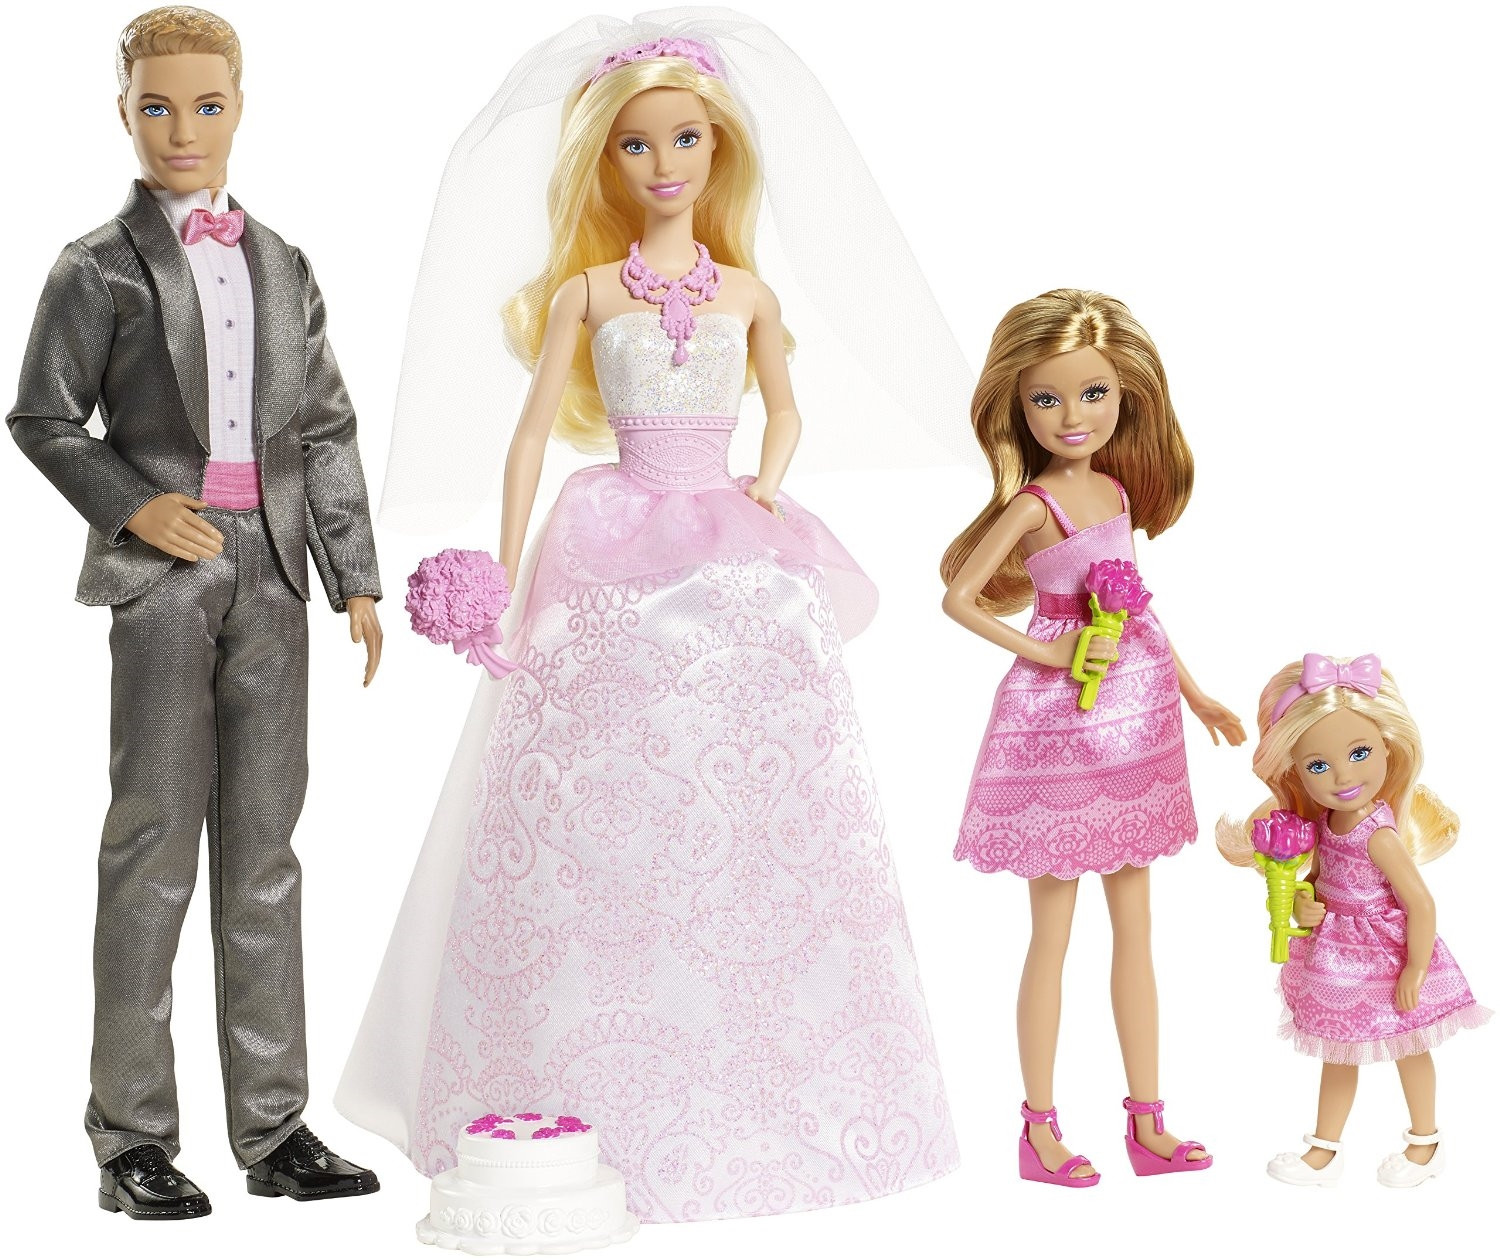 Hochzeit Barbie  Ken Doll Barbie in Rock n Royals Capa Wedding & Brasil 2015